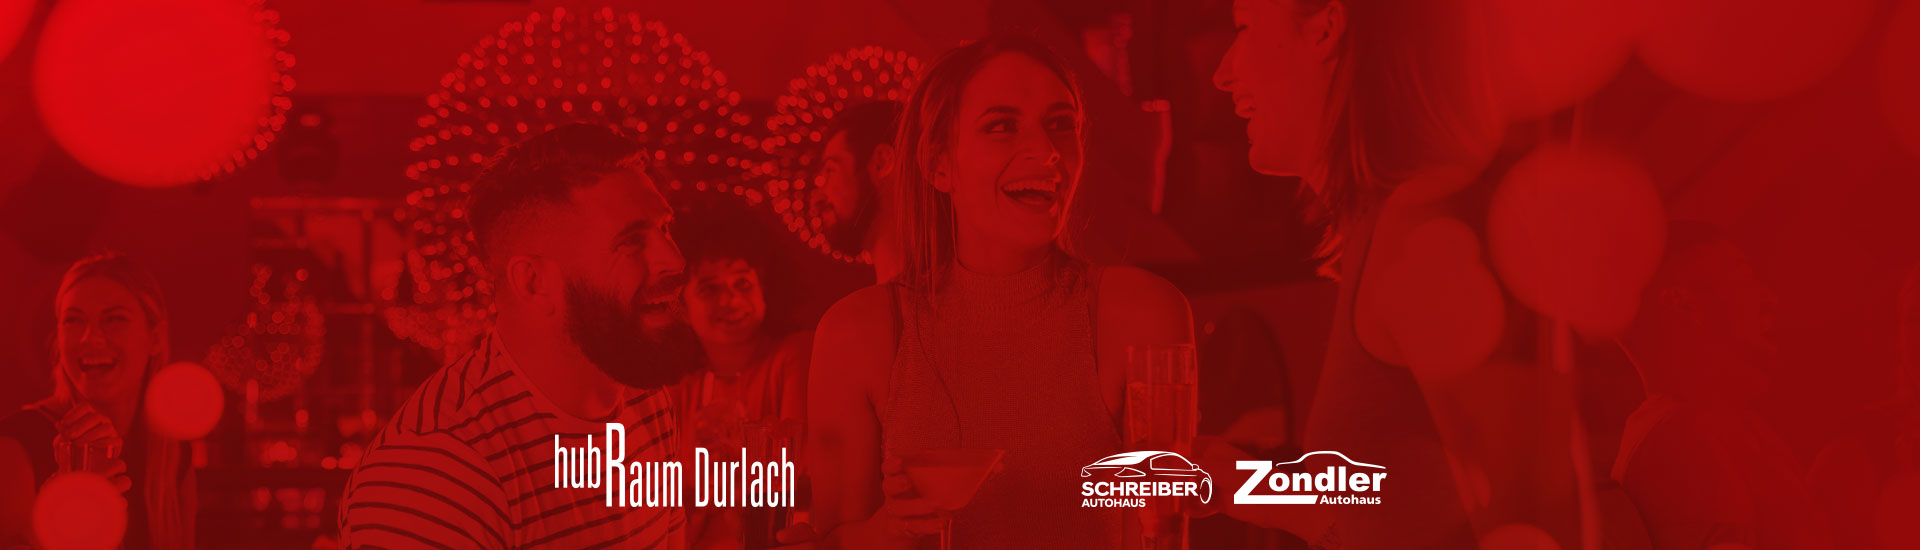 after work party karlsruhe